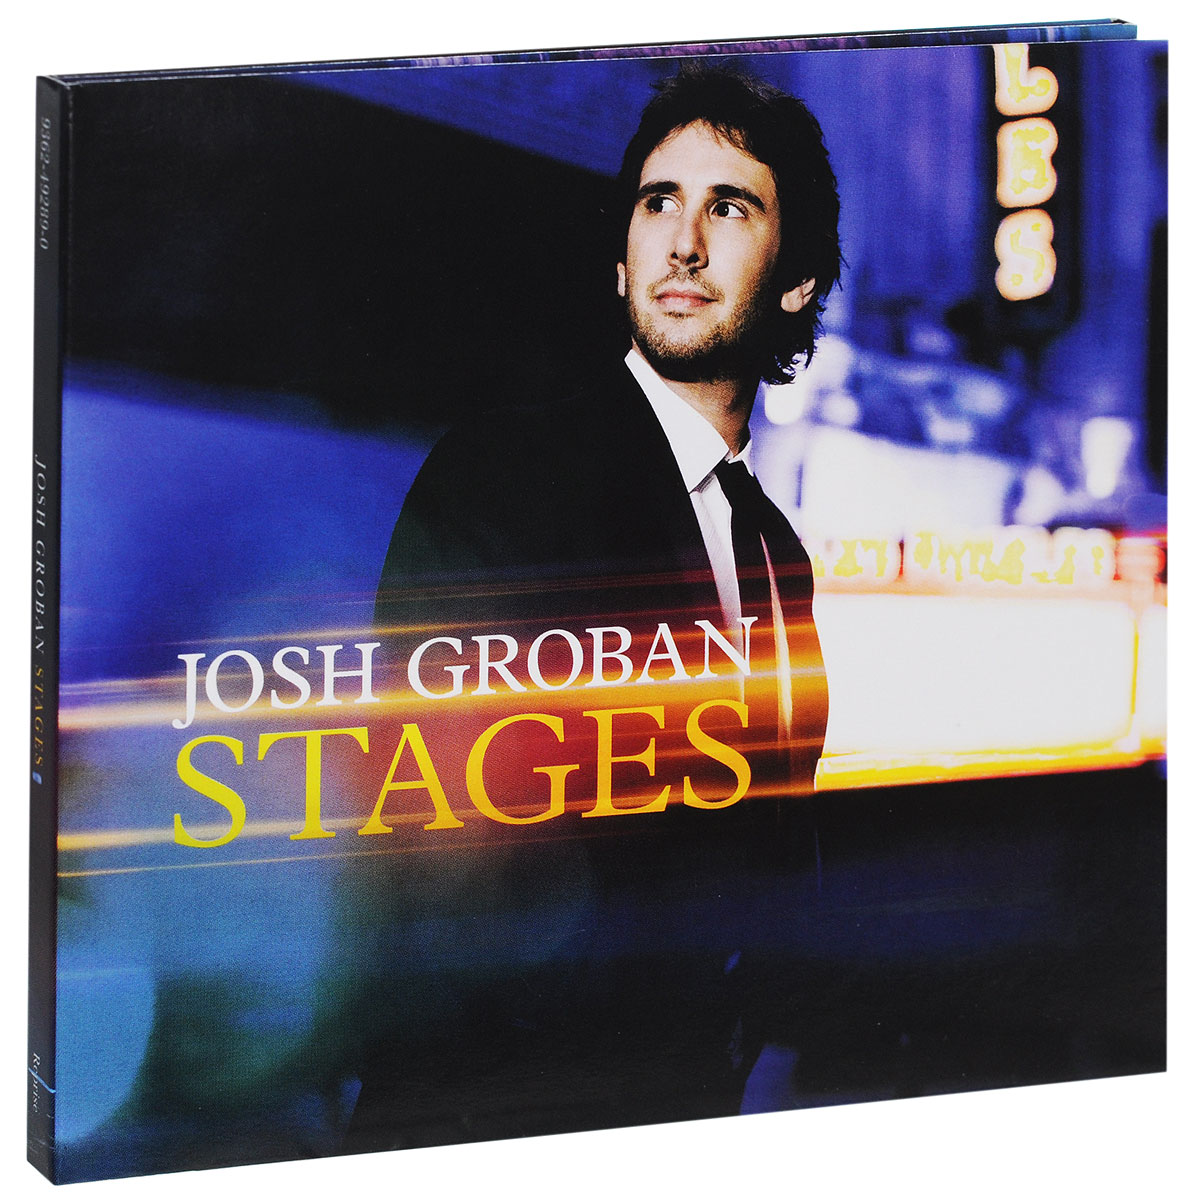 Фото - Джош Гробан Josh Groban. Stages. Deluxe Edition cd led zeppelin ii deluxe edition